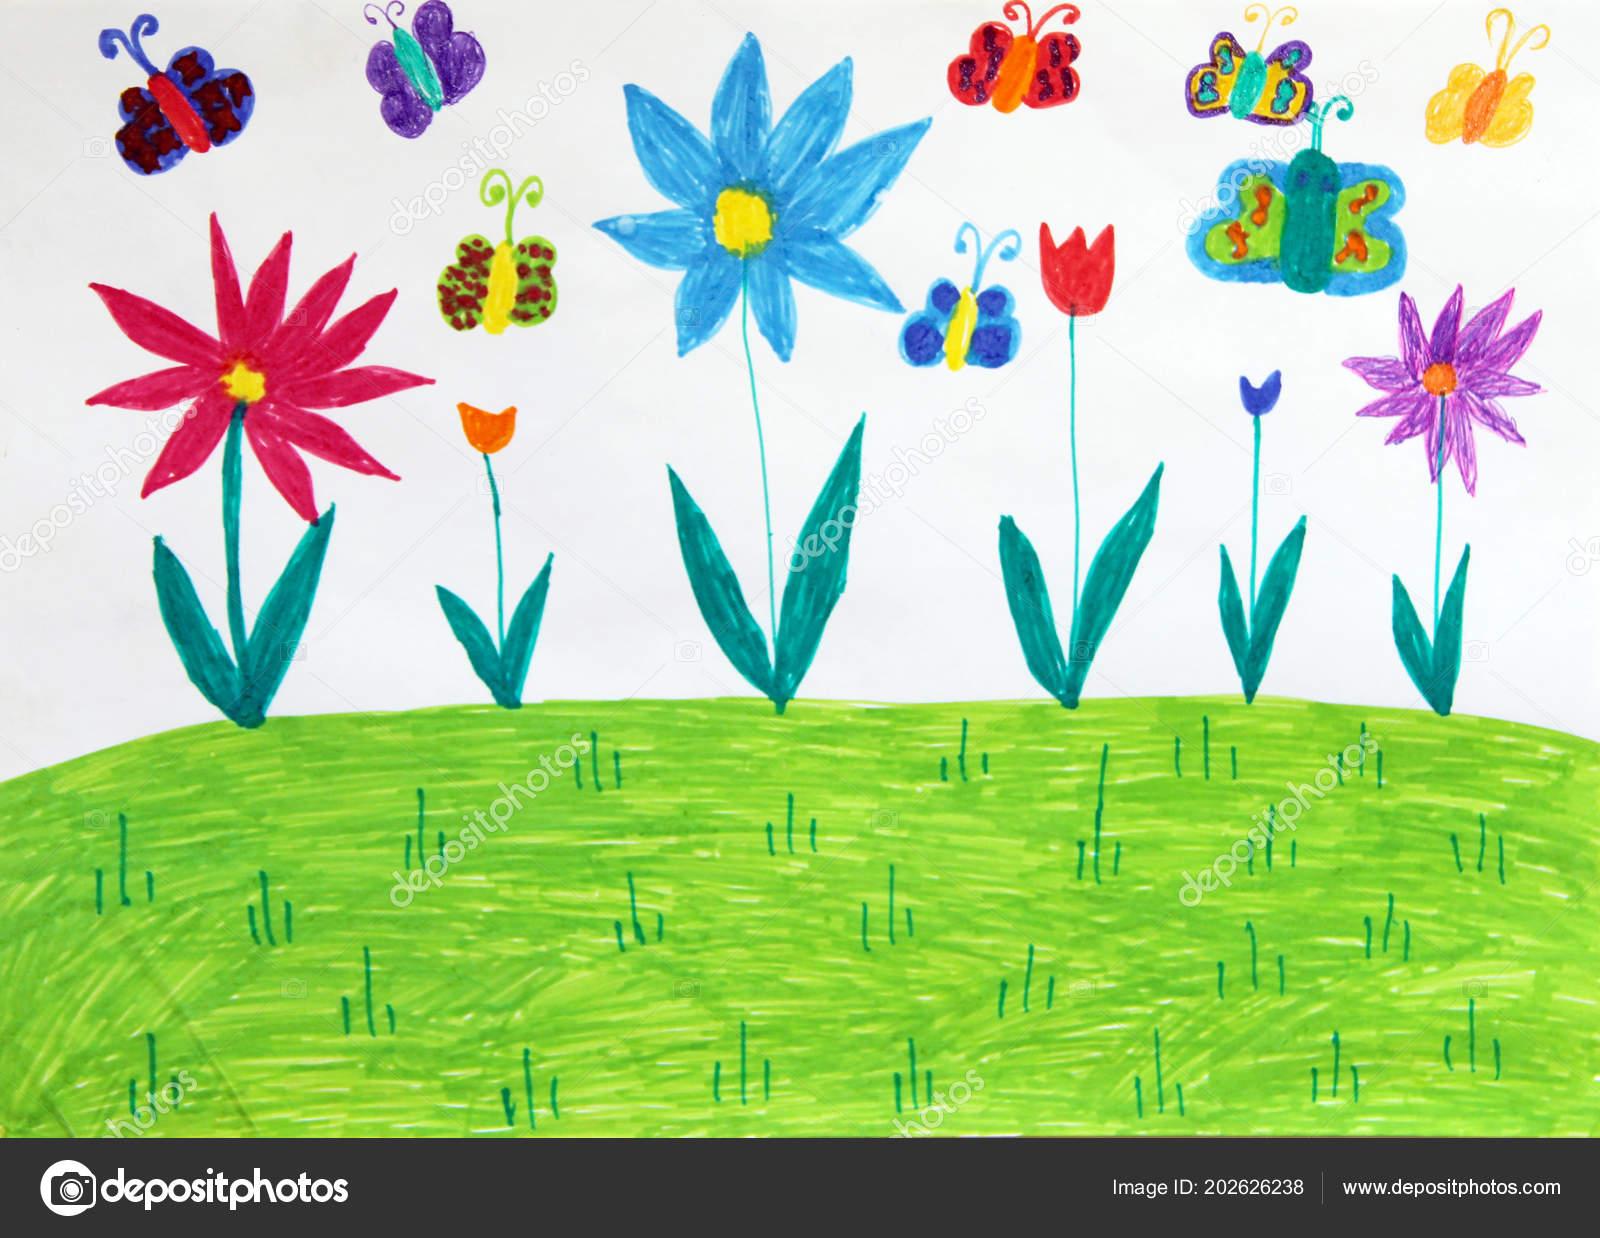 Colored Children Drawing Butterflies Flowers Meadow Kid Drawing